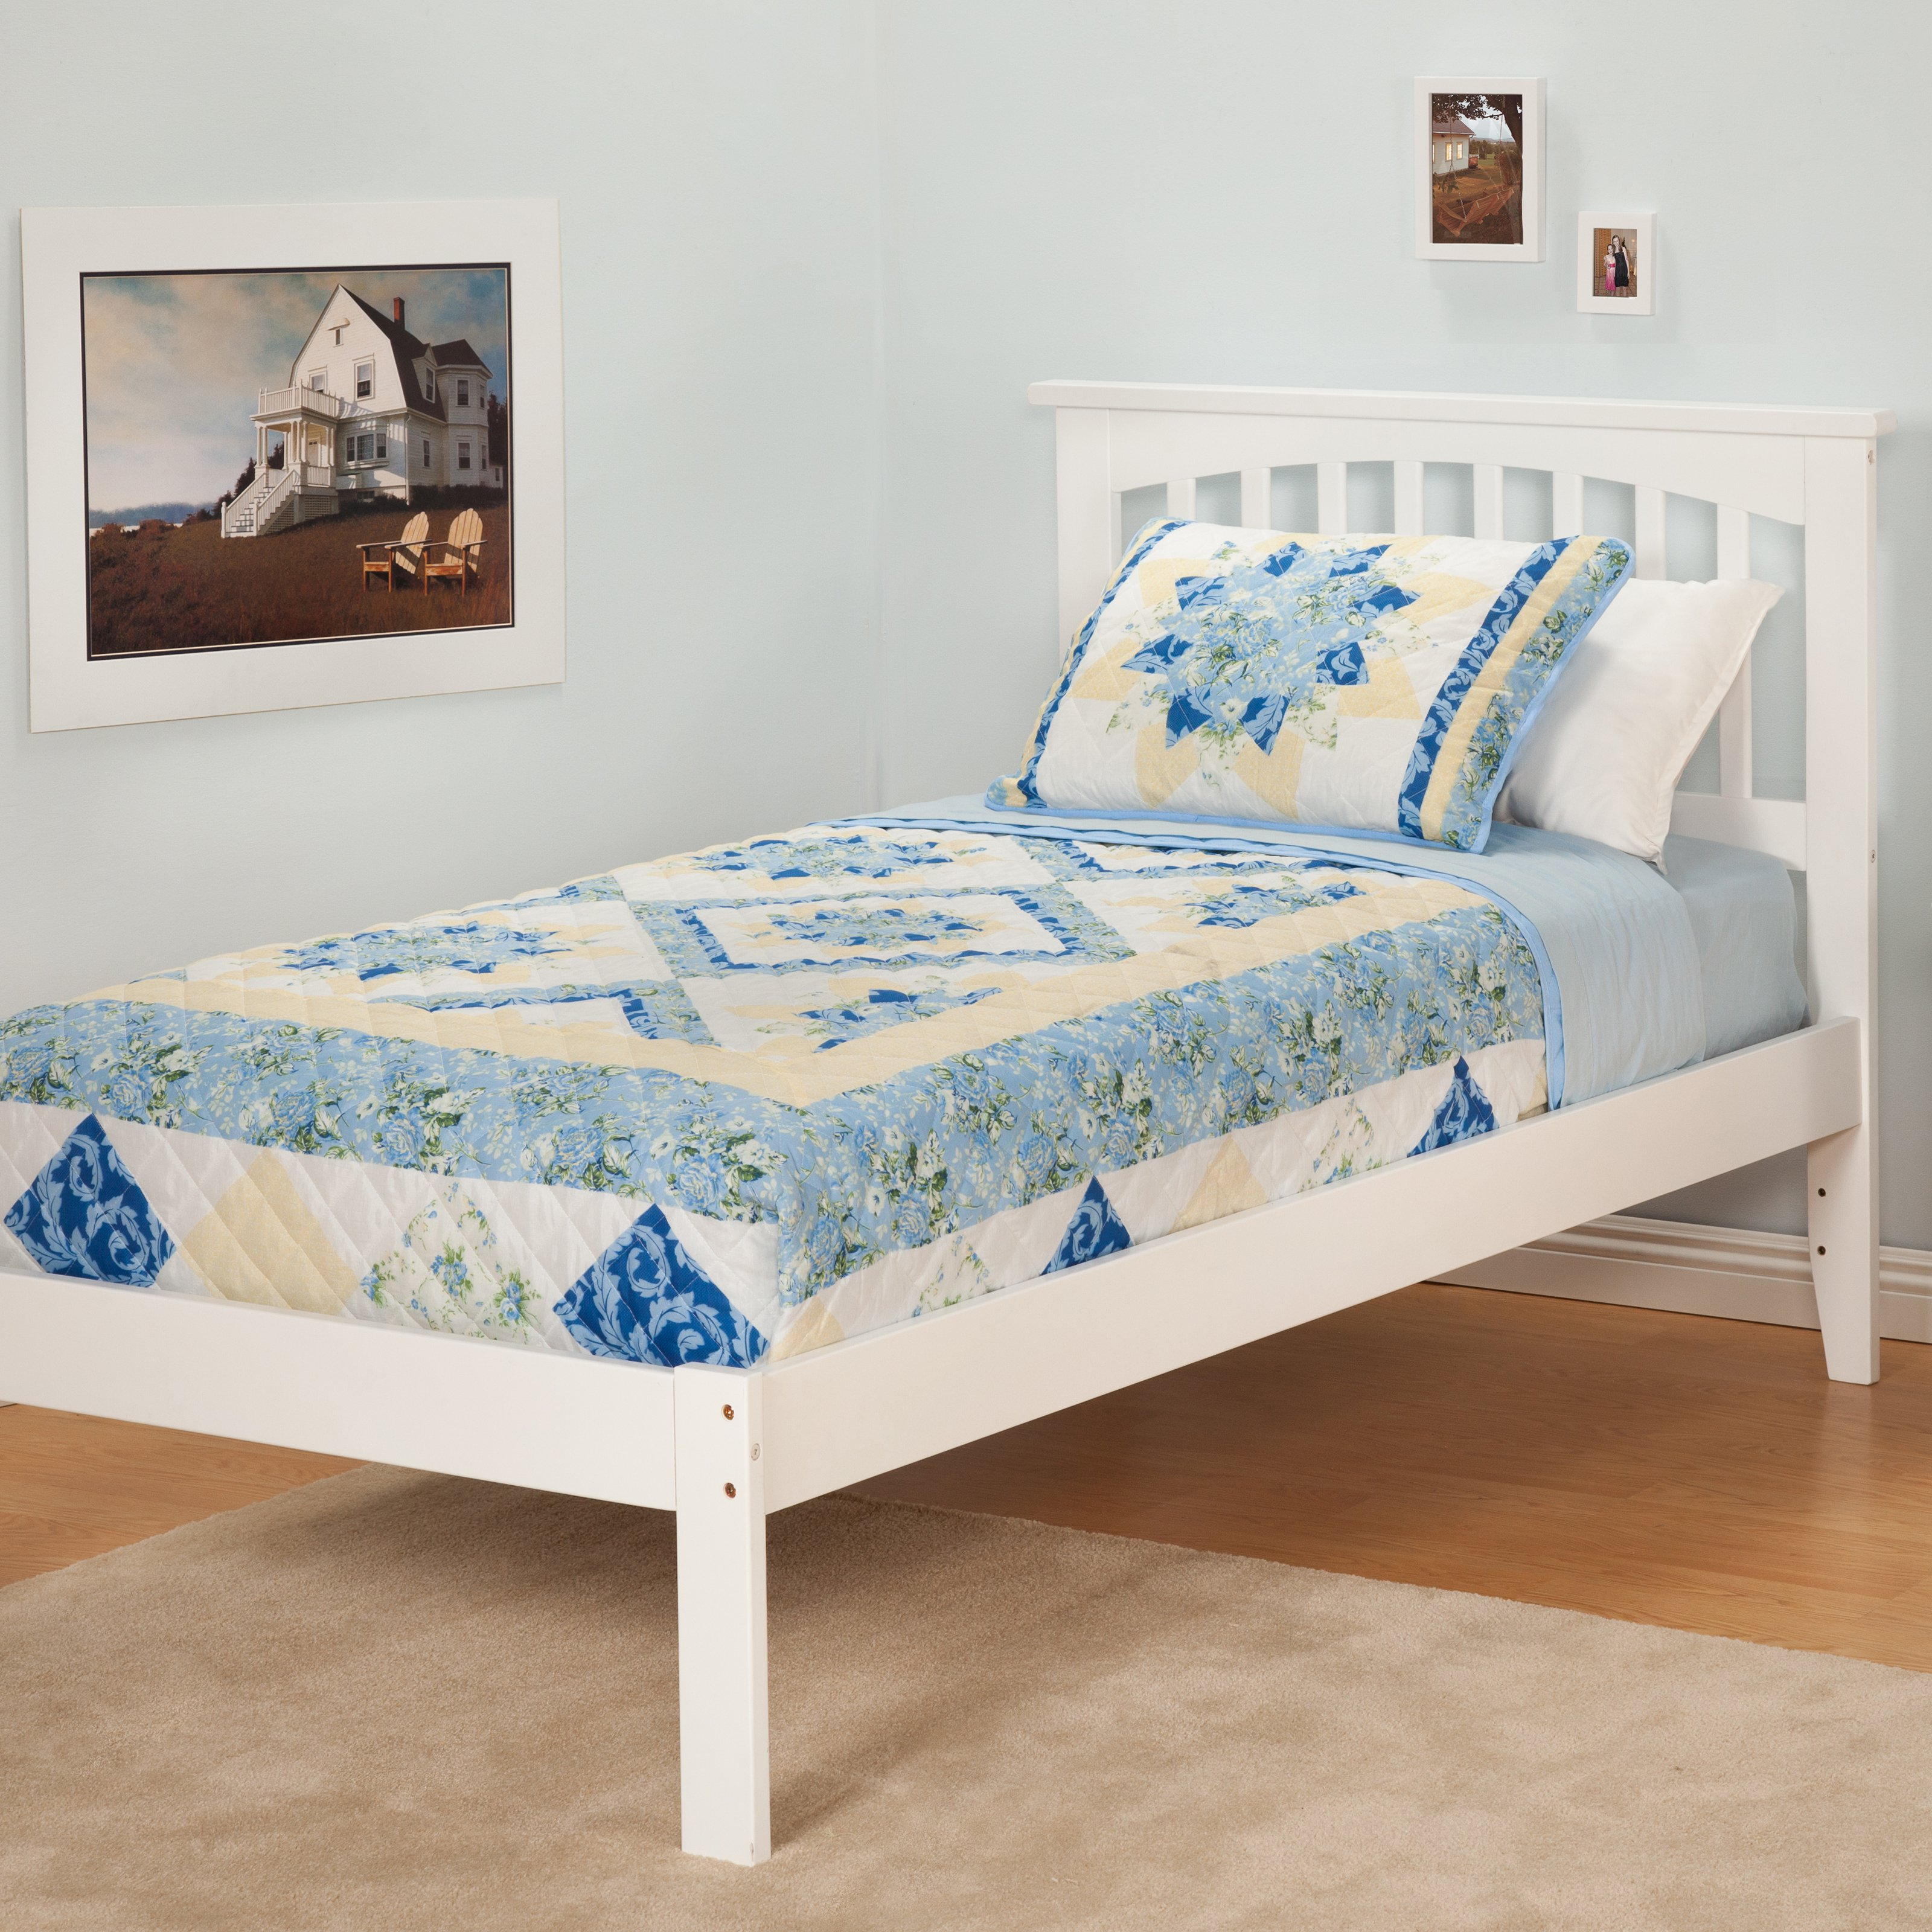 Atlantic Furniture Urban Lifestyle Slat Bed with Trundle